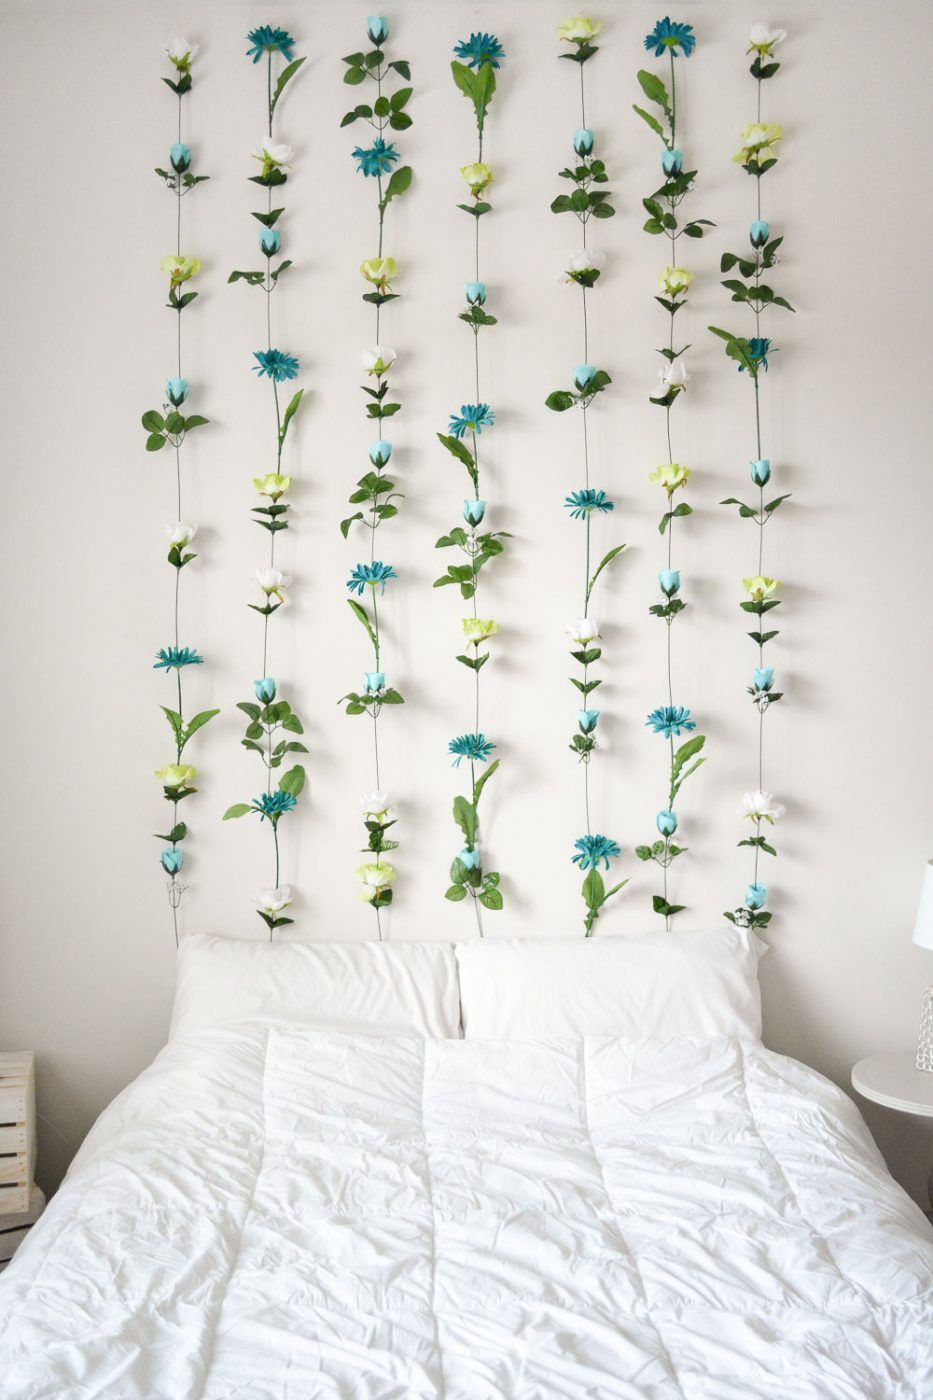 Best ideas about Wall Decors DIY . Save or Pin DIY Flower Wall Headboard Home Decor Now.